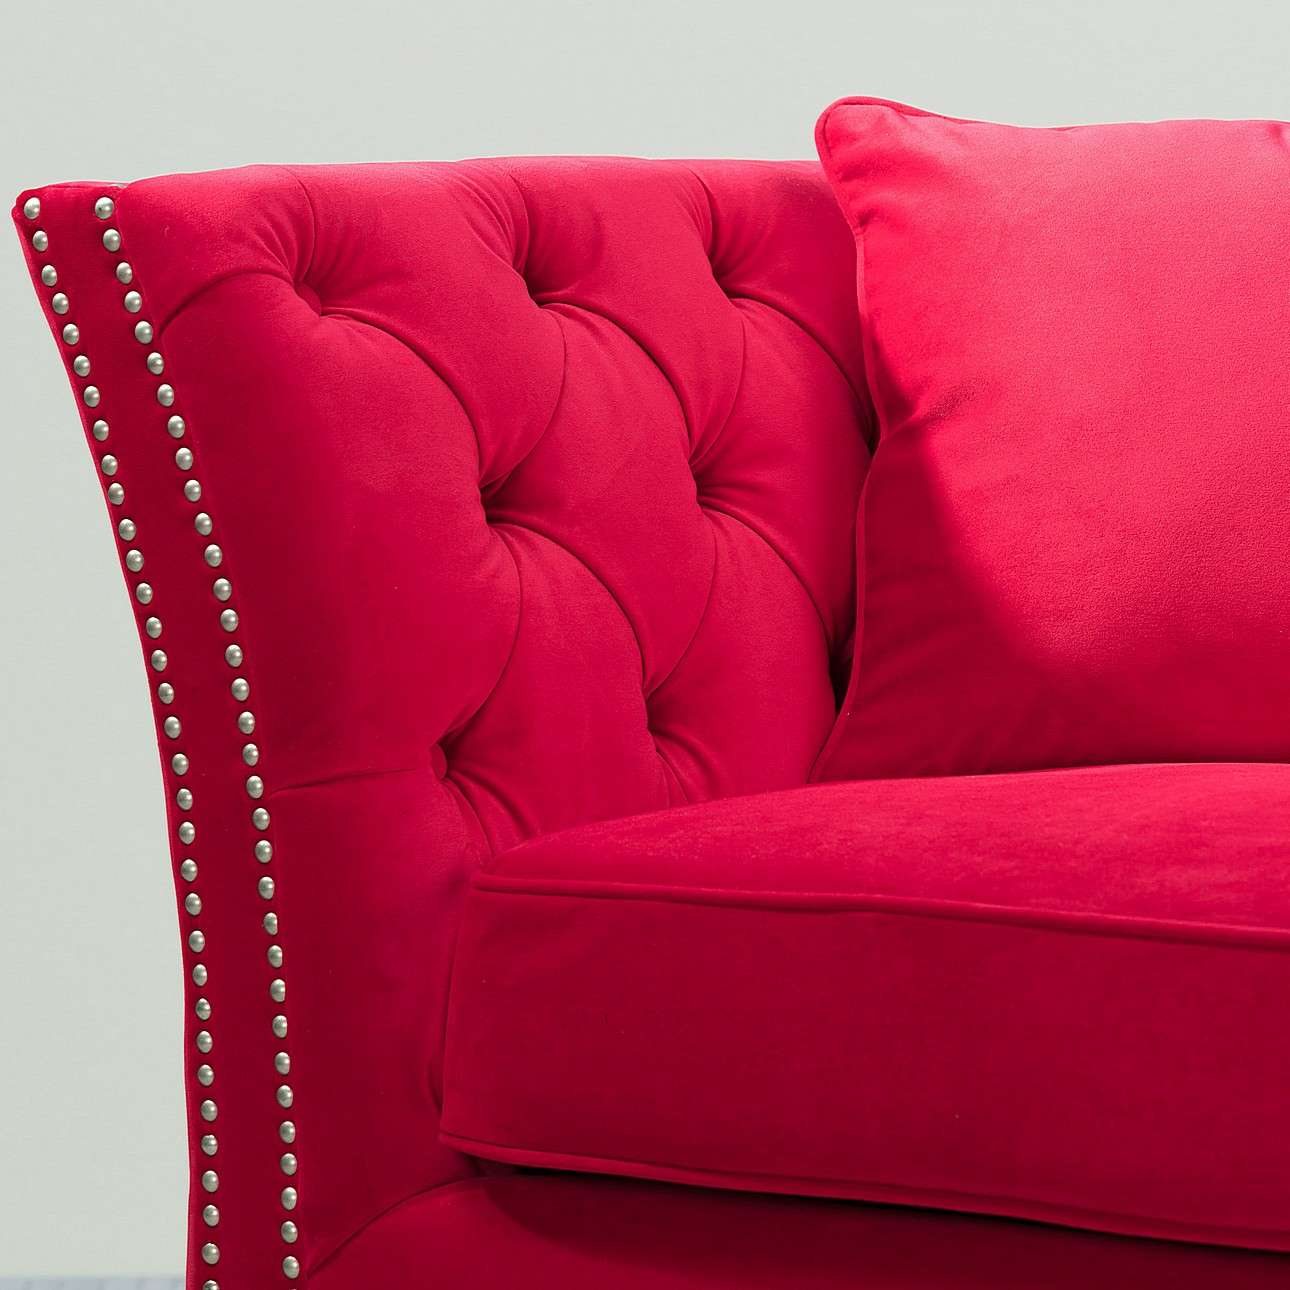 Sofa Chesterfield Modern Velvet Raspberry Red 2os.